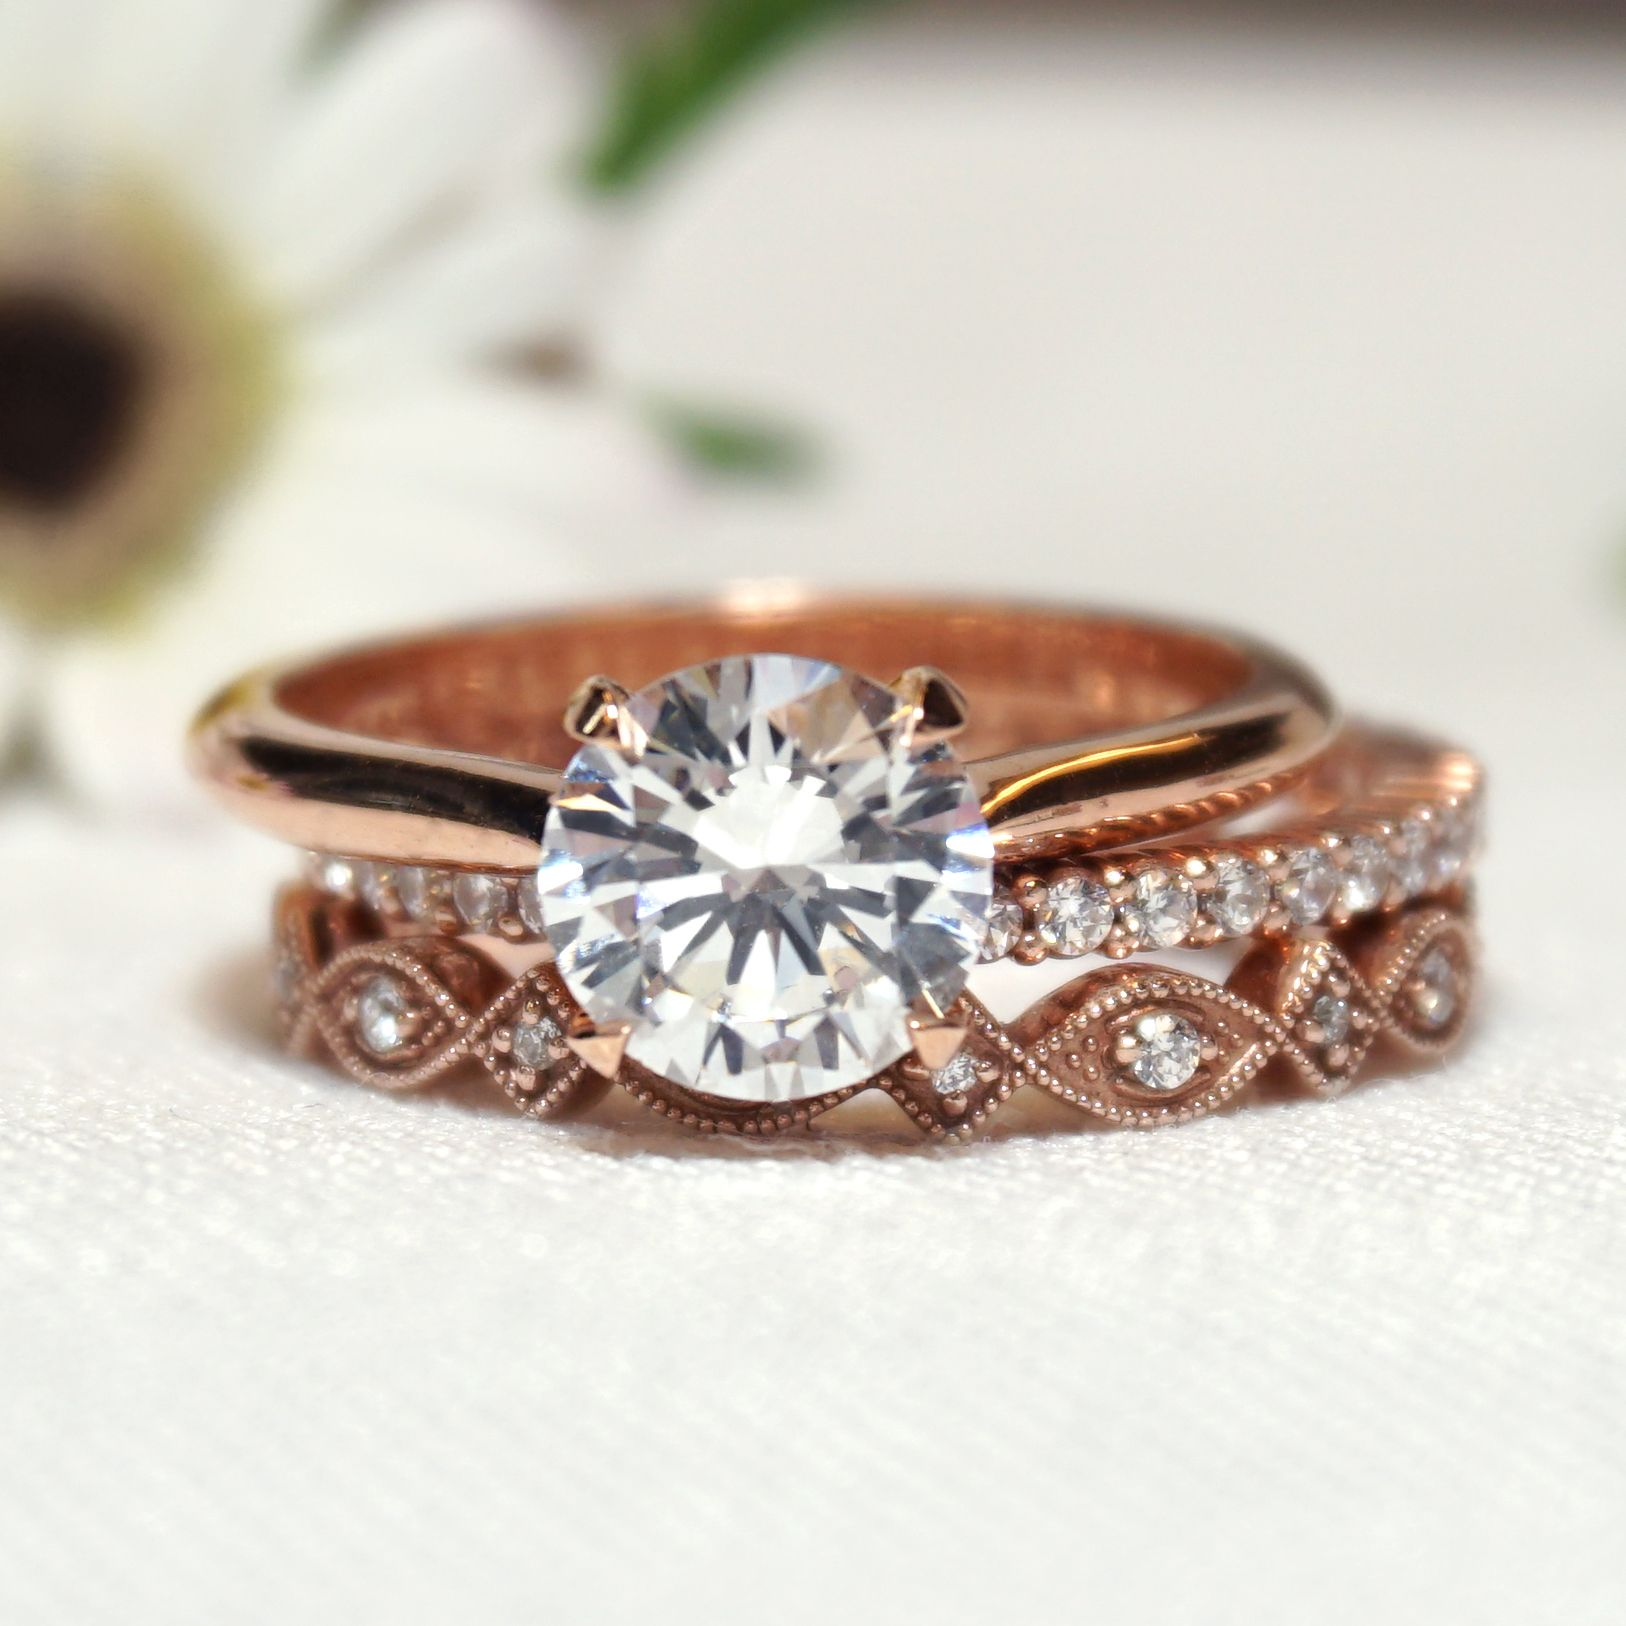 Solitaire Diamond Engagement Ring Engagement rings for